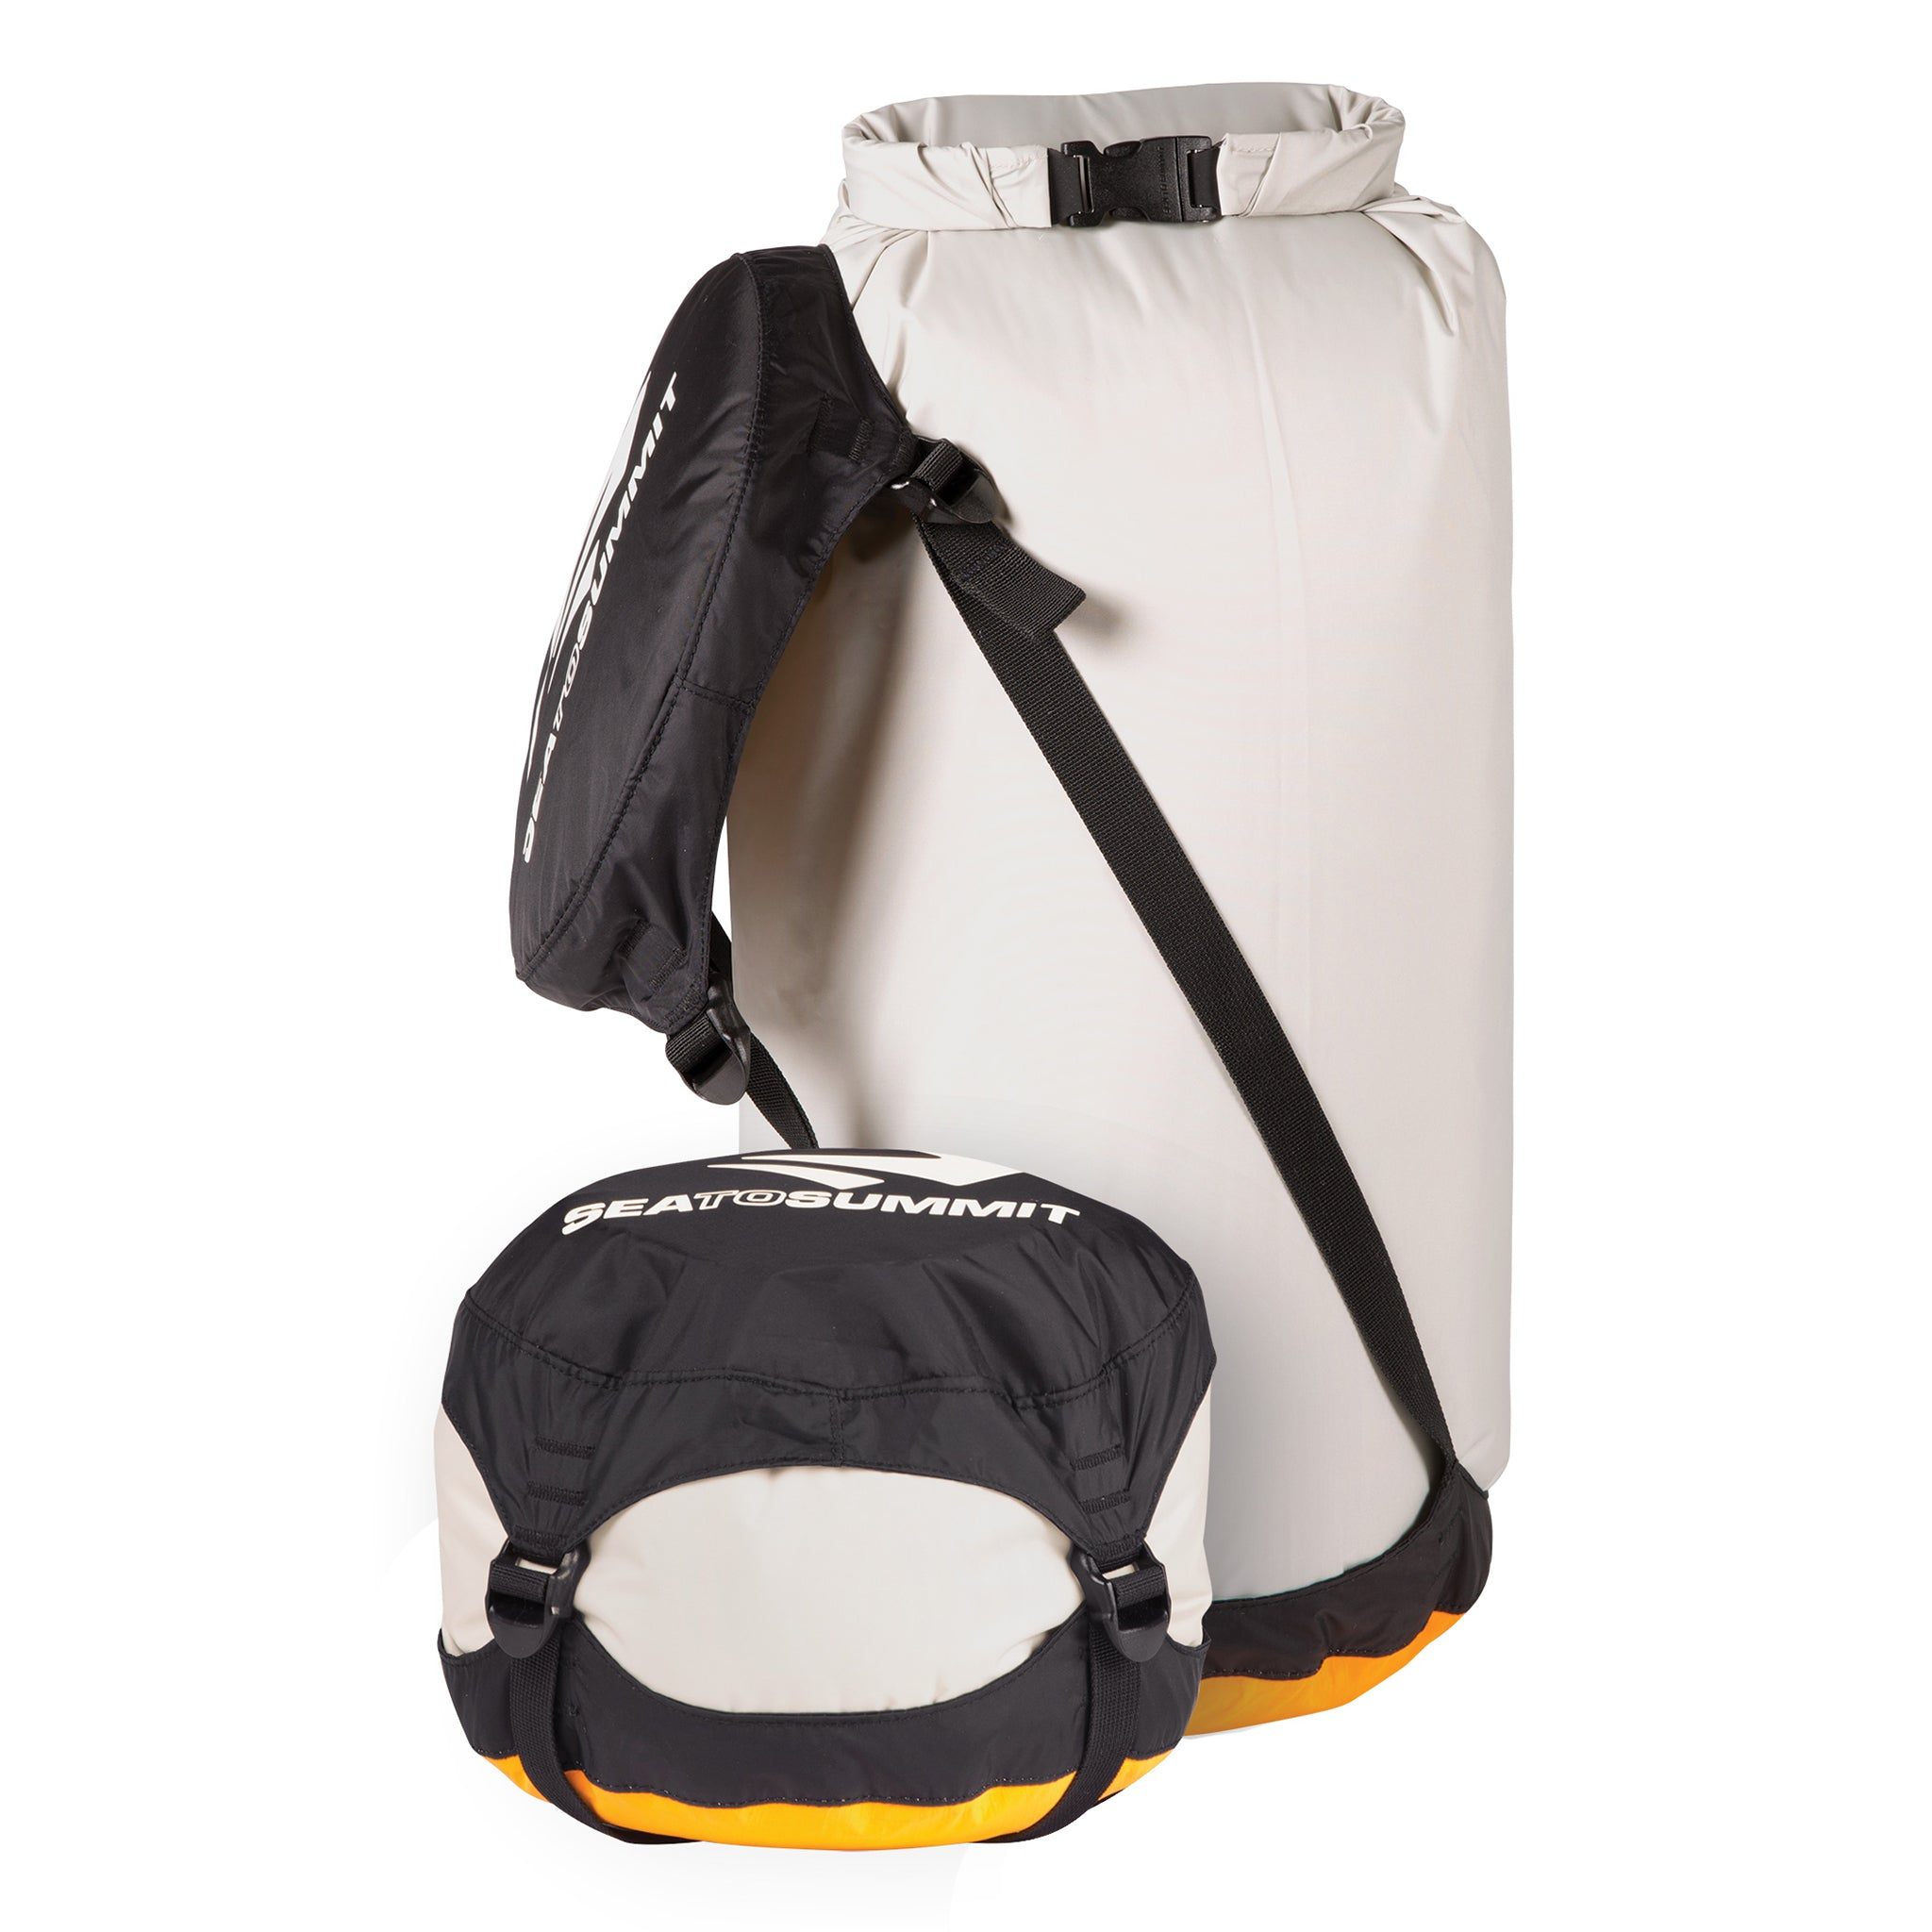 eVent Compression Dry Bag _ sleeping bag compression sack _ 20 liter